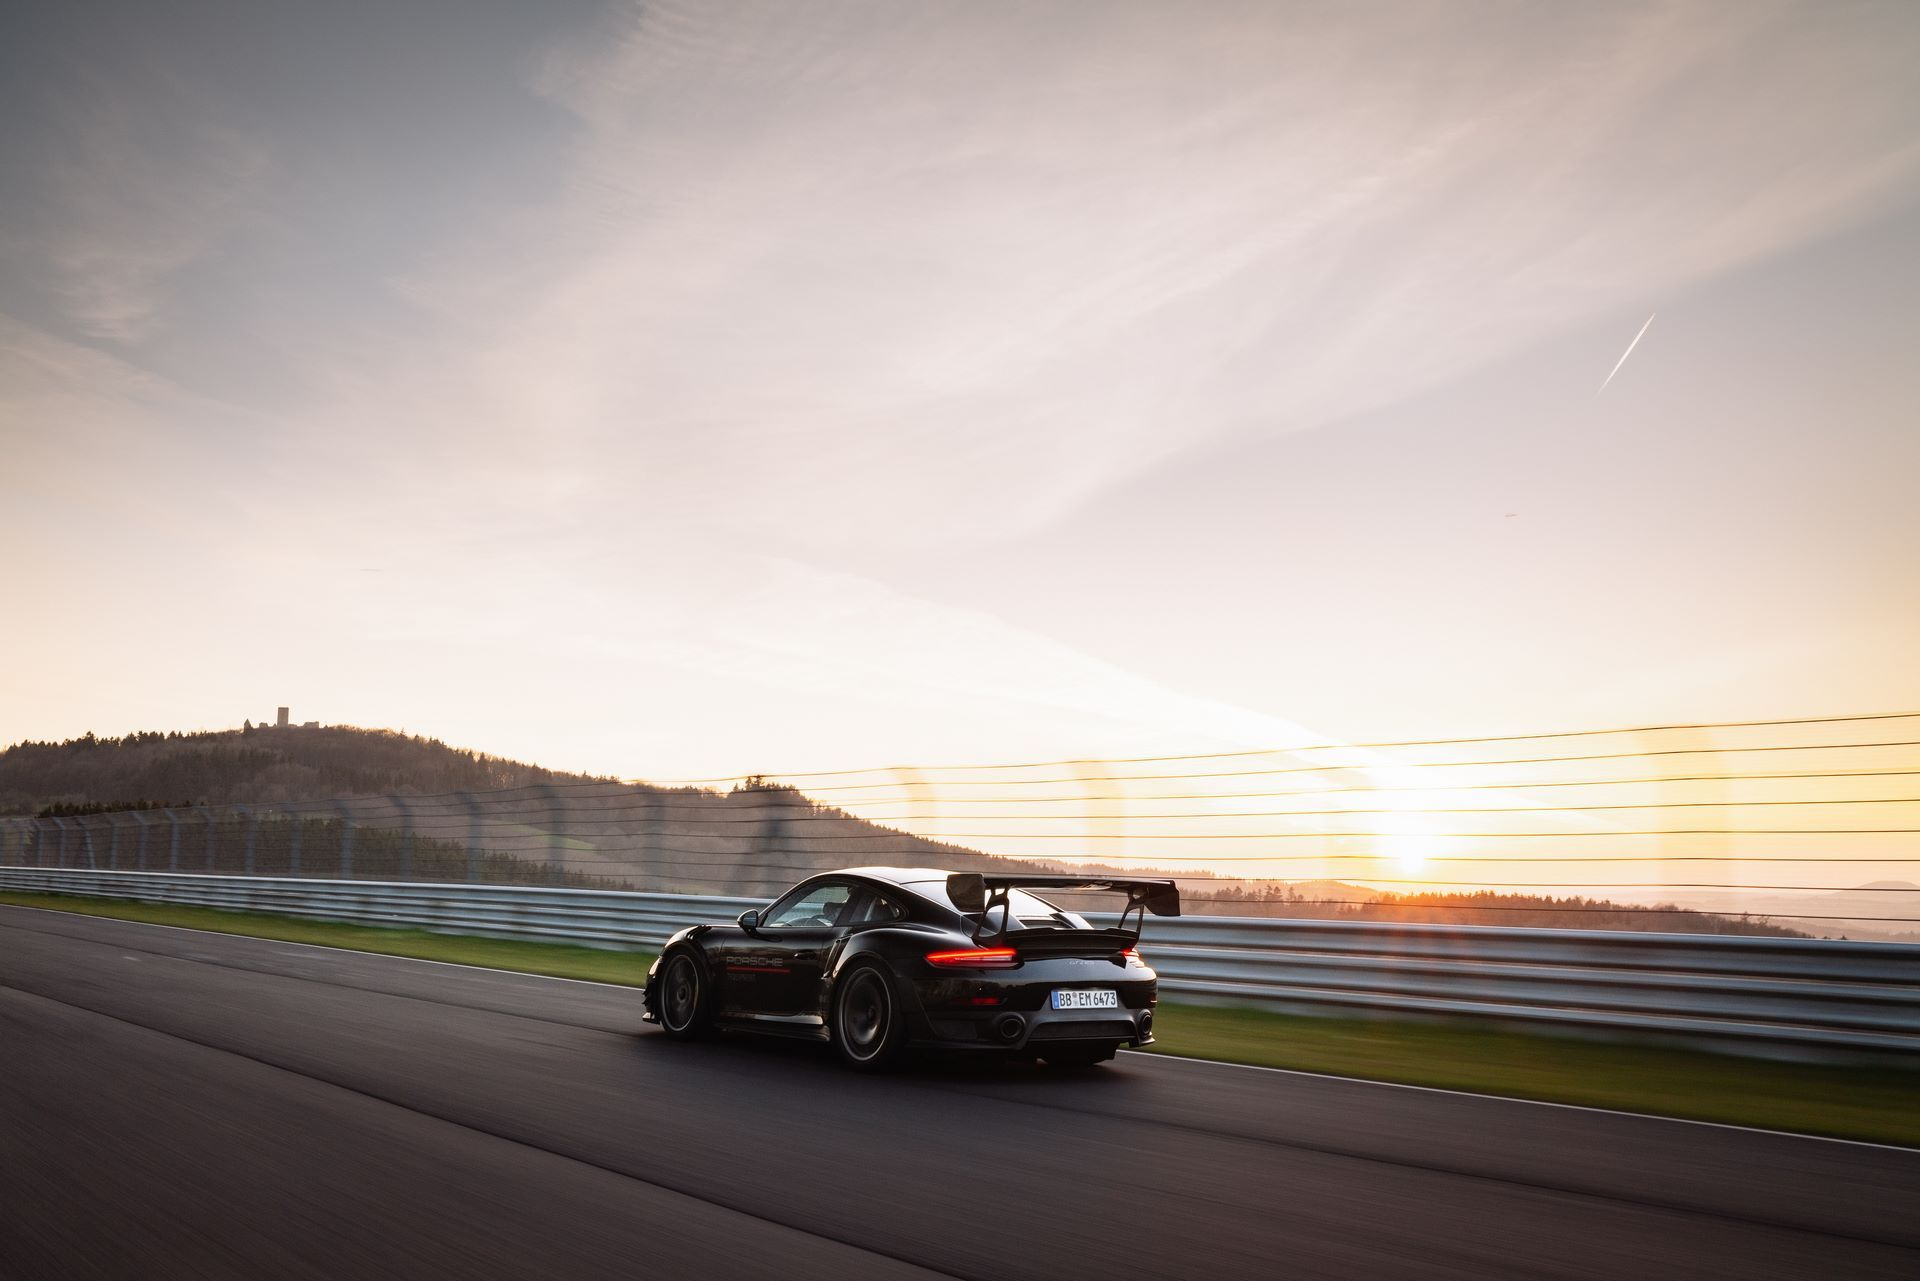 Porsche-911-GT2-RS-Manthey-Performance-Kit-Nurburgring-Record-2